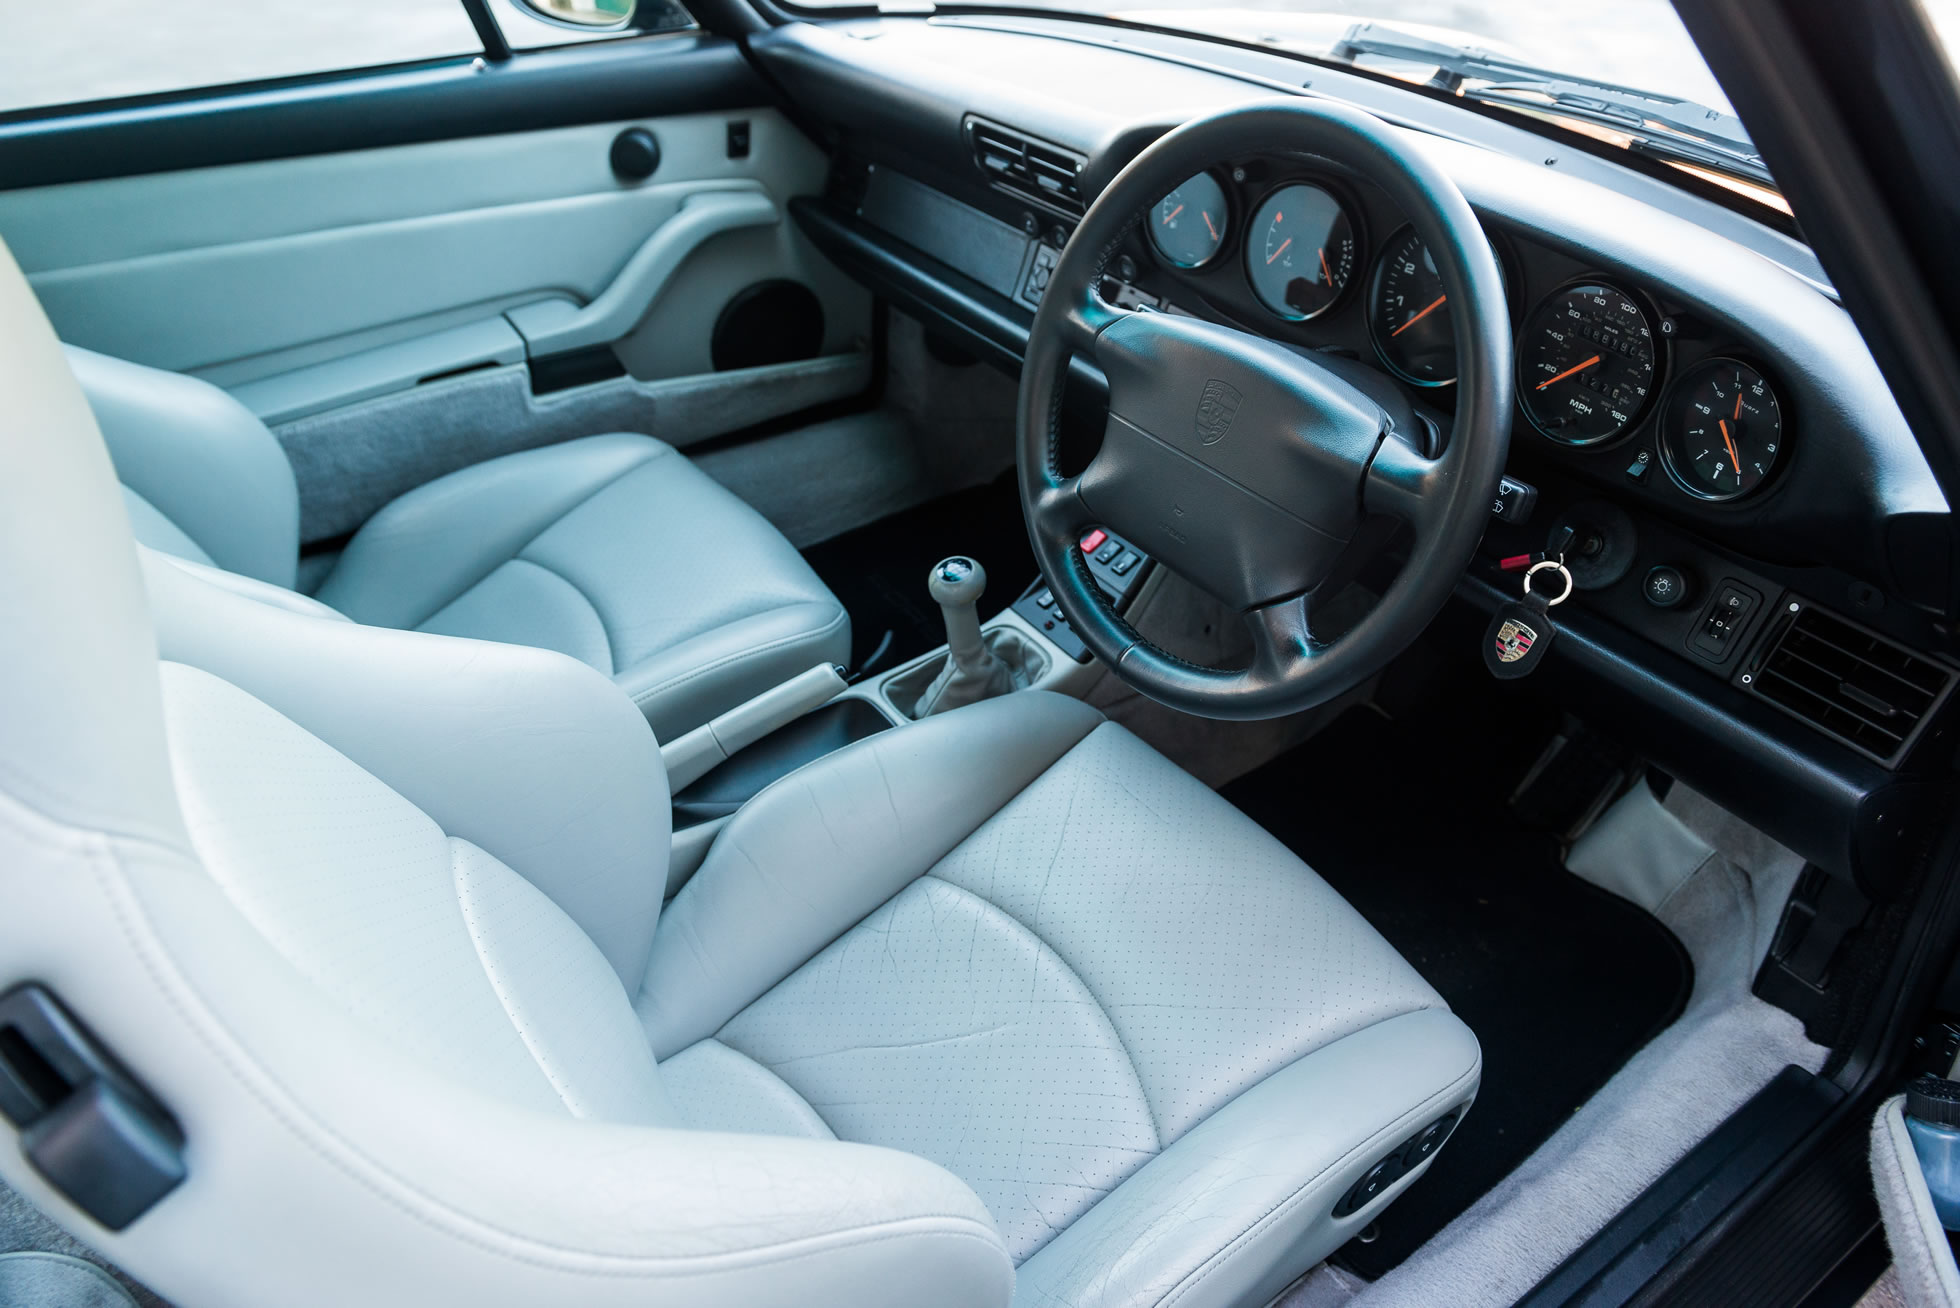 For Sale 1994 Porsche 911 Carrera (993) interior